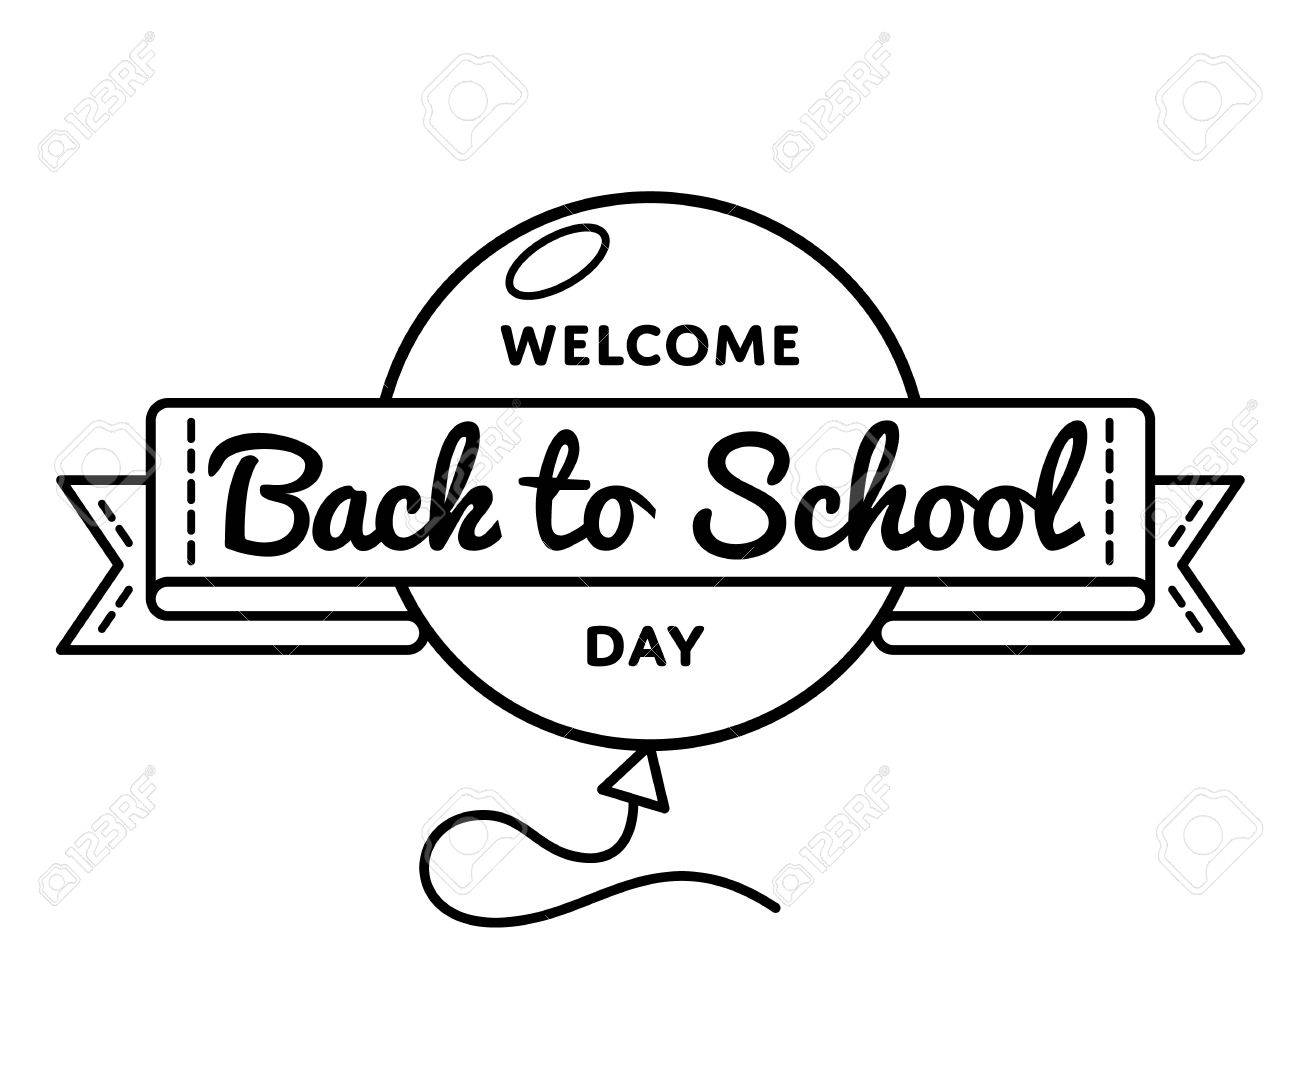 Welcome Back to School day emblem isolated vector illustration...